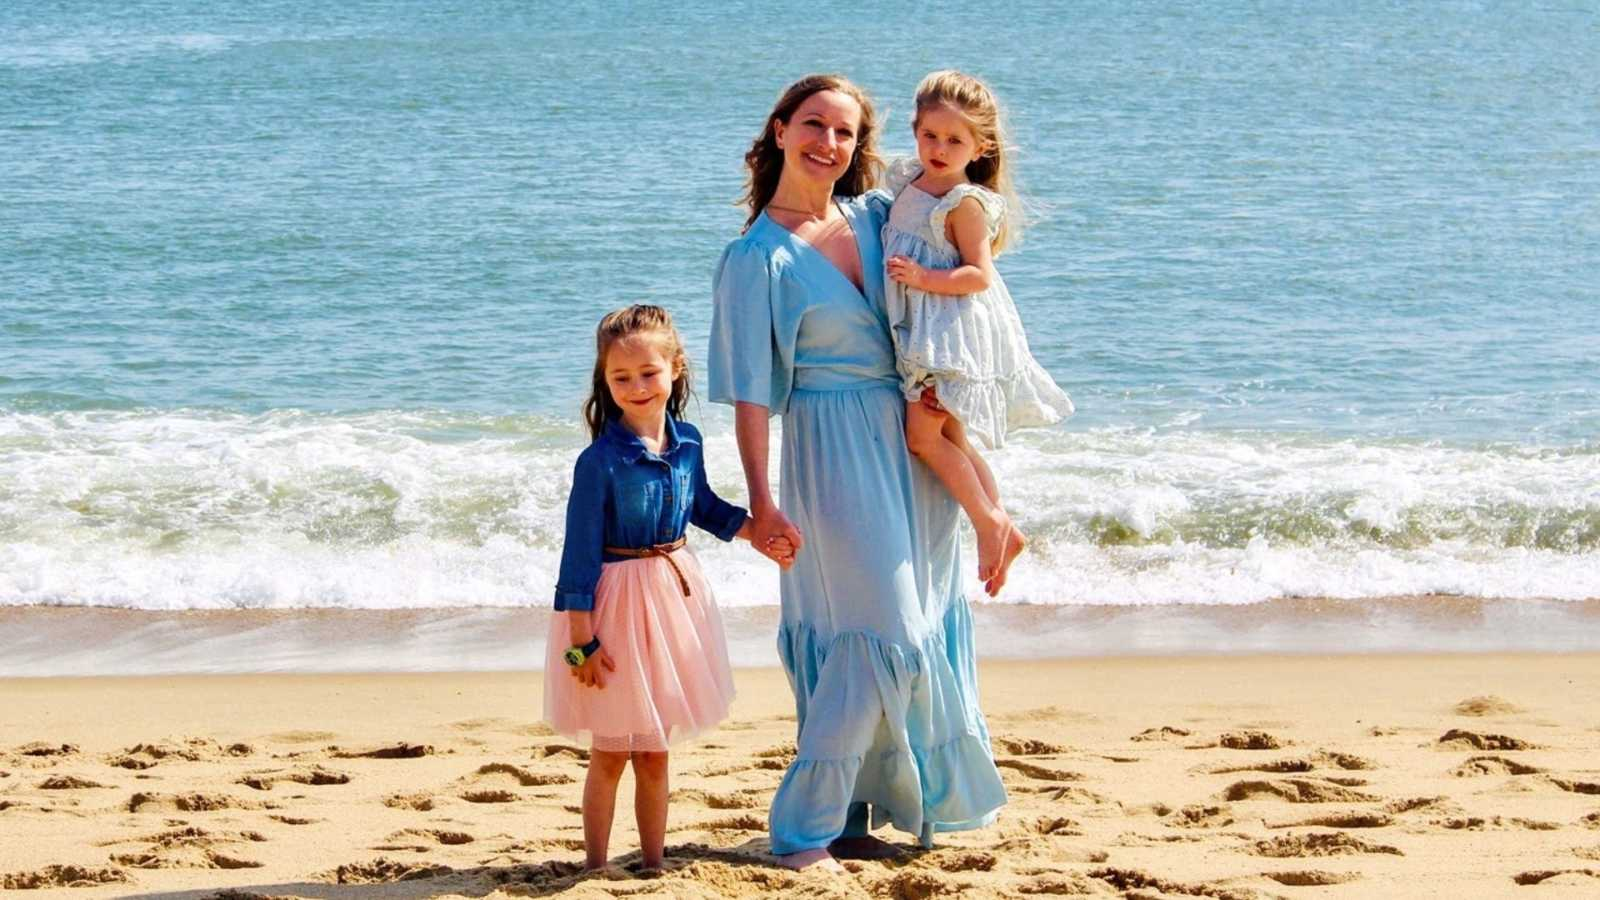 Mom to two daughters takes beautiful photo with her girls on the beach